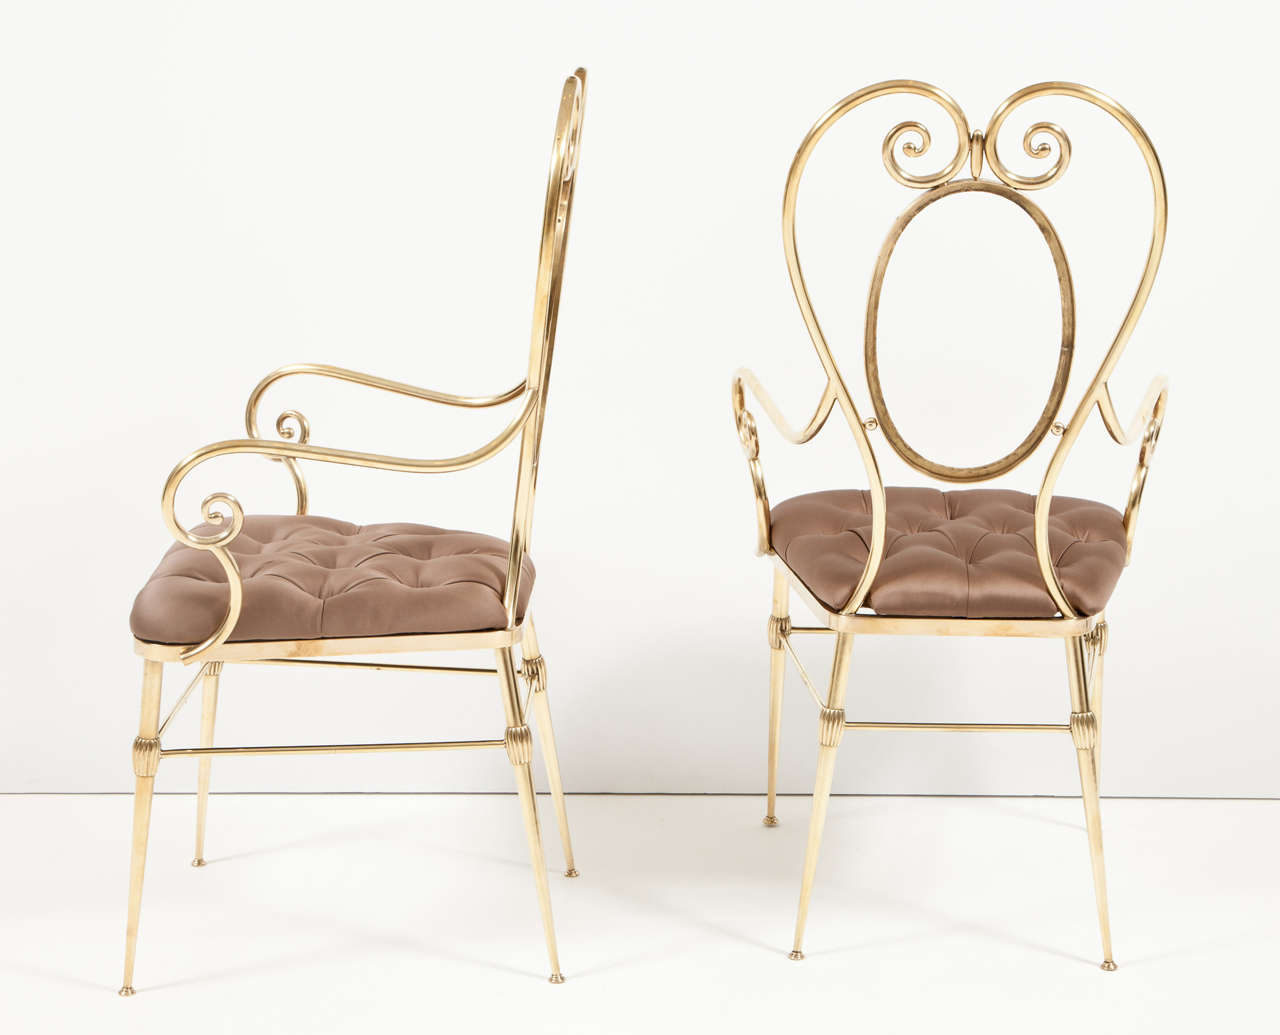 Pair of Brass Chairs, C 1950, Silk Upholstery, Italy For Sale 1